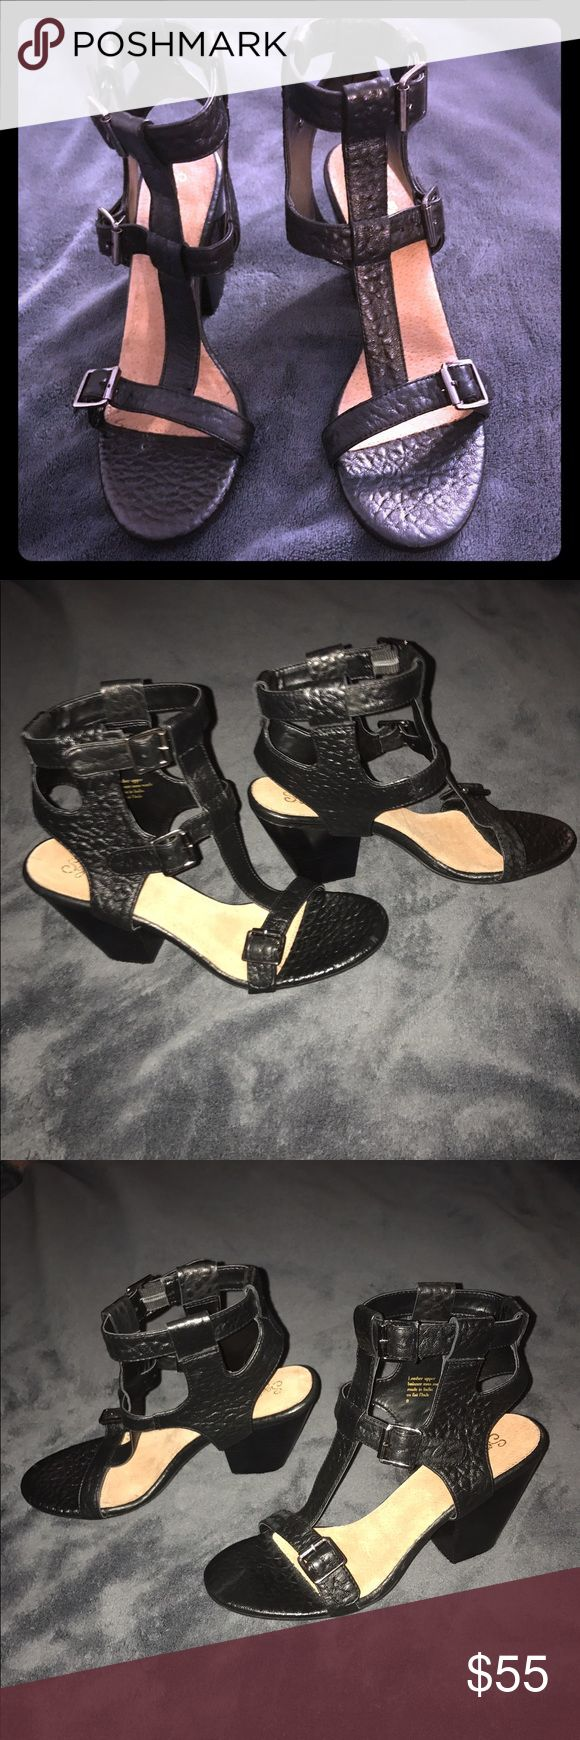 Sexy Seychelles black Leather Heels size 9 New Sexy Seychelles black Leather Heels size 9 -New without Tags or box! These are Hot!!! 😍😍 Seychelles Shoes Heels